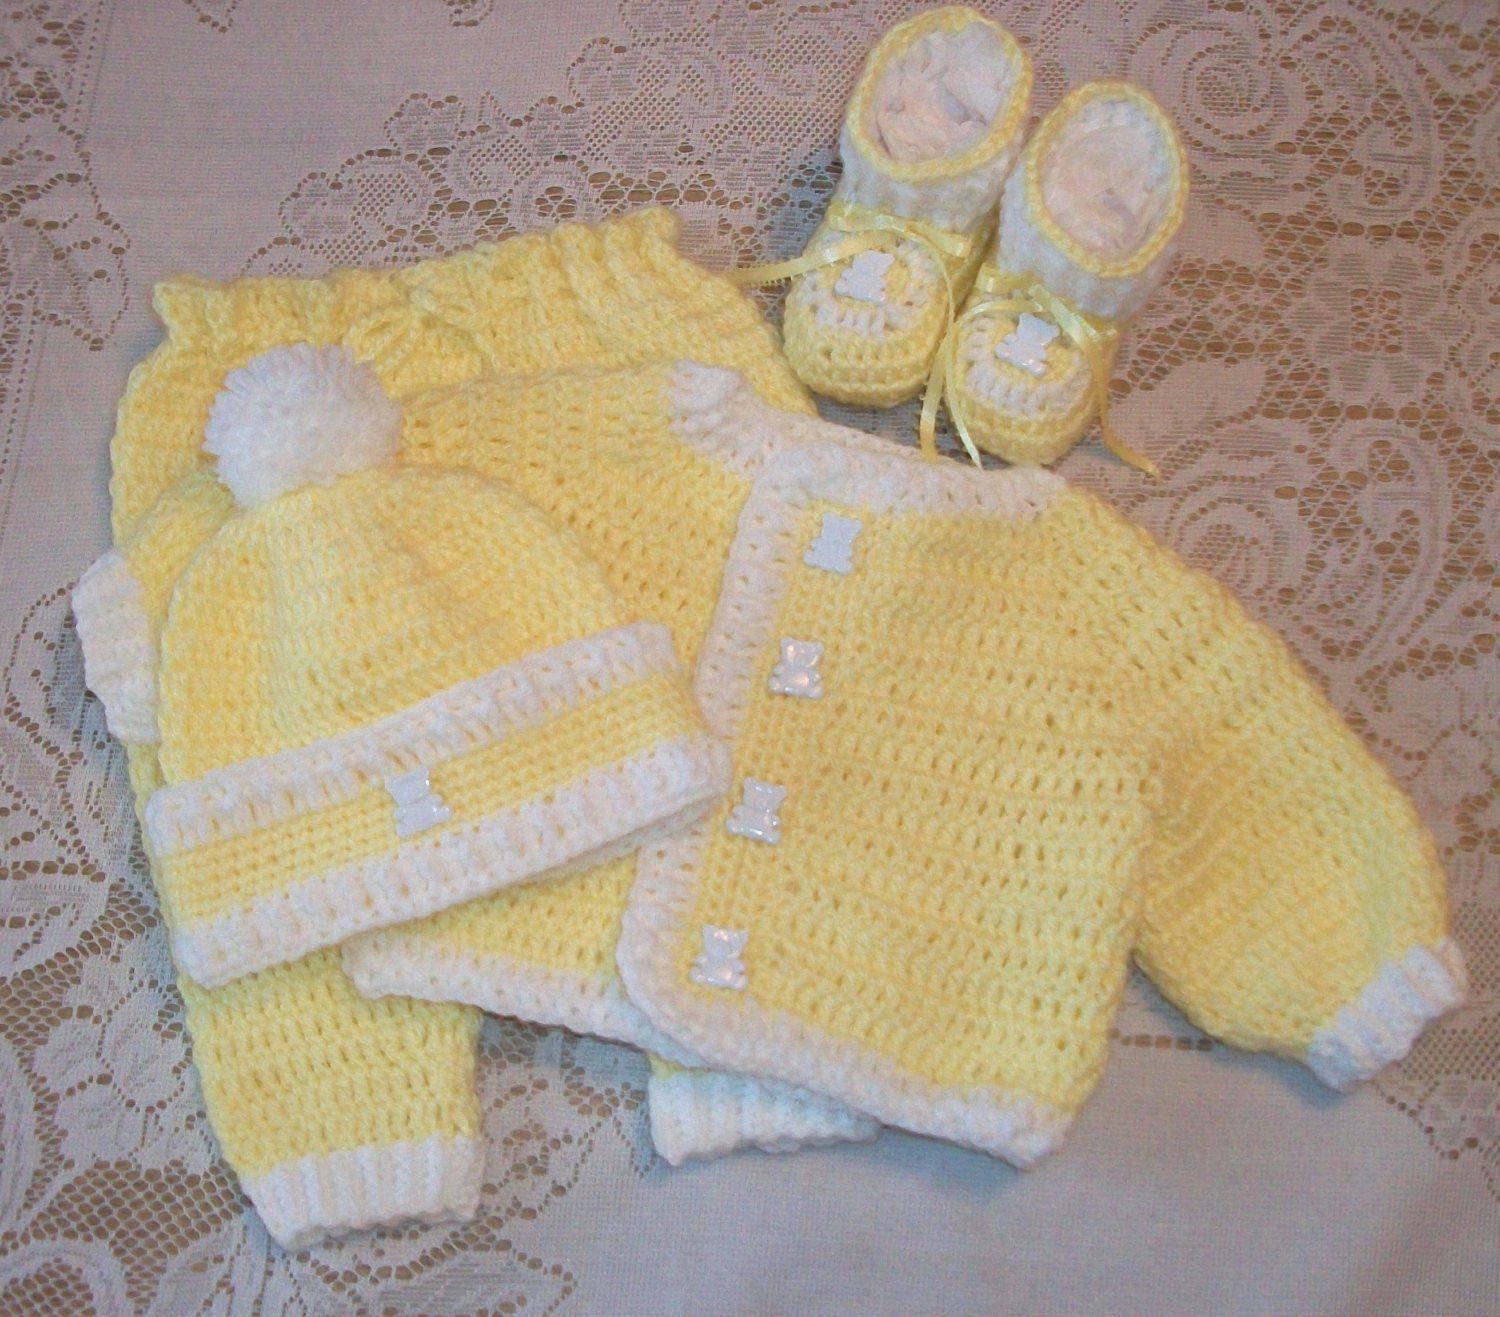 Best Of Crochet Baby Boy Yellow Sweater Set Layette with Leggings and Crochet Baby Sets Of Amazing 49 Models Crochet Baby Sets